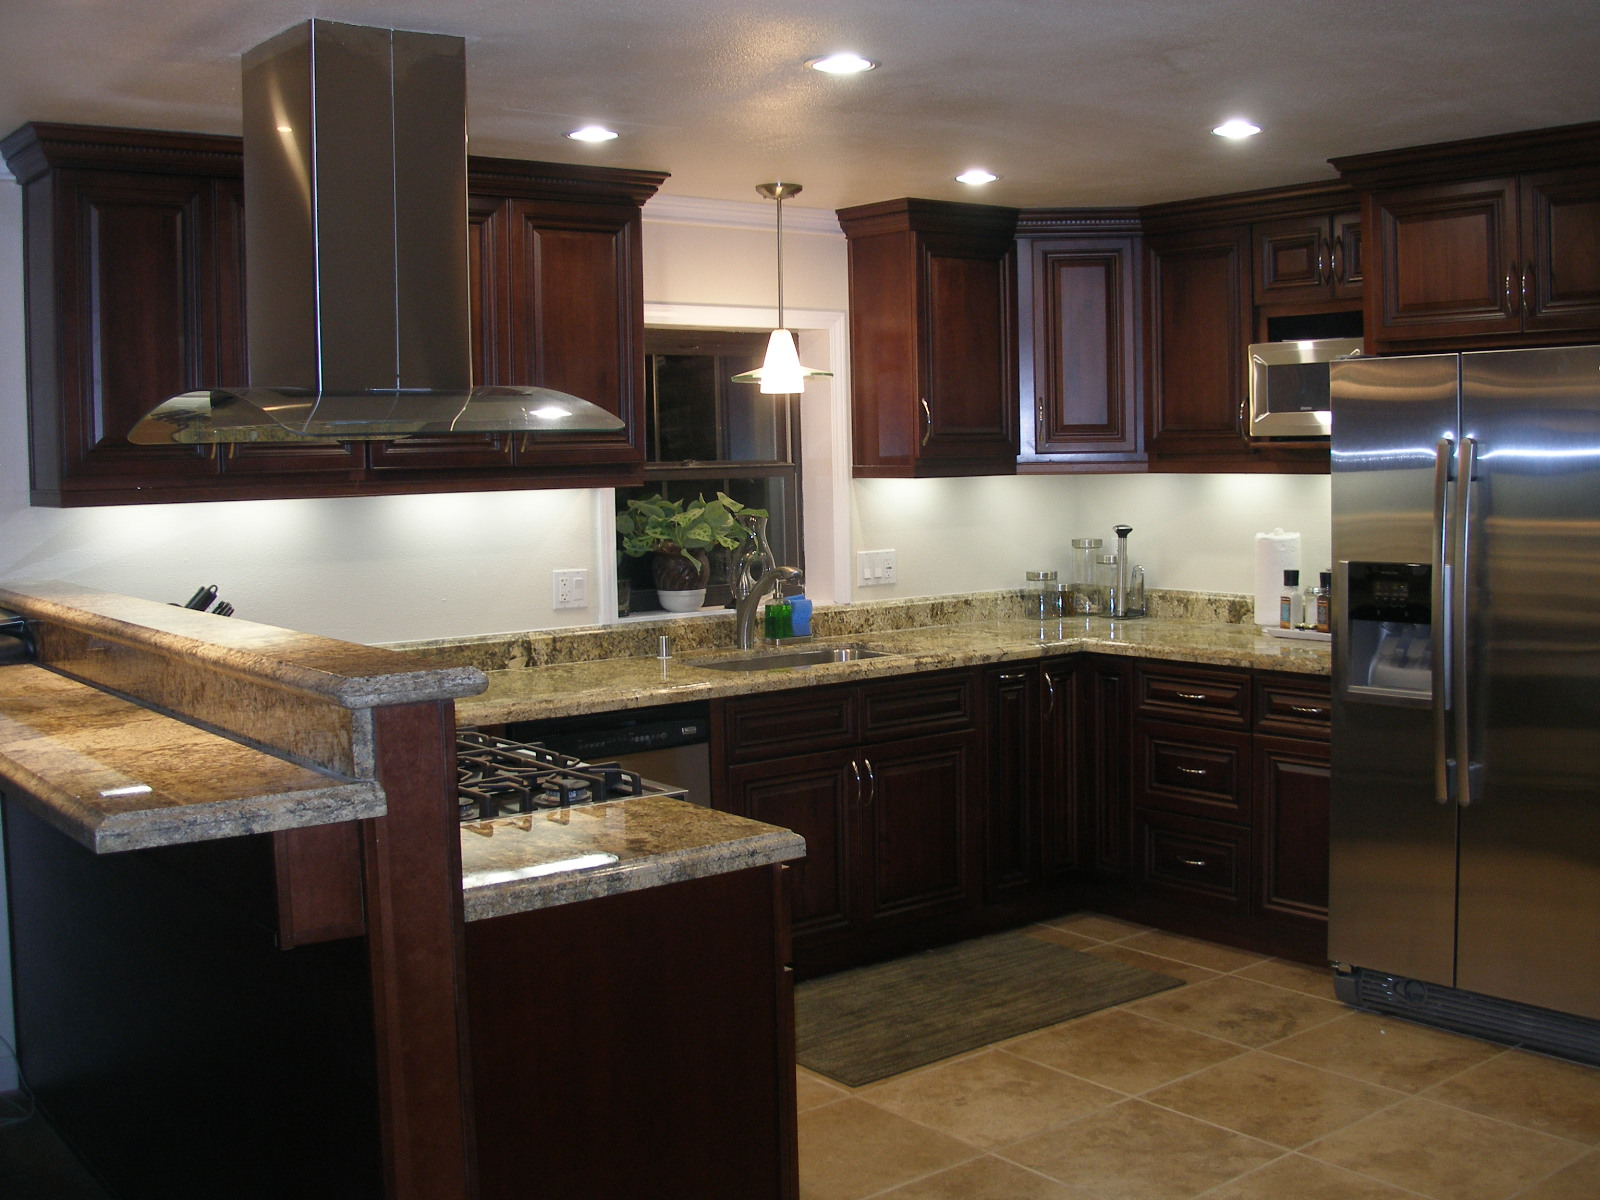 Kitchen remodeling brad t jones construction - Remodeling kitchen ideas ...